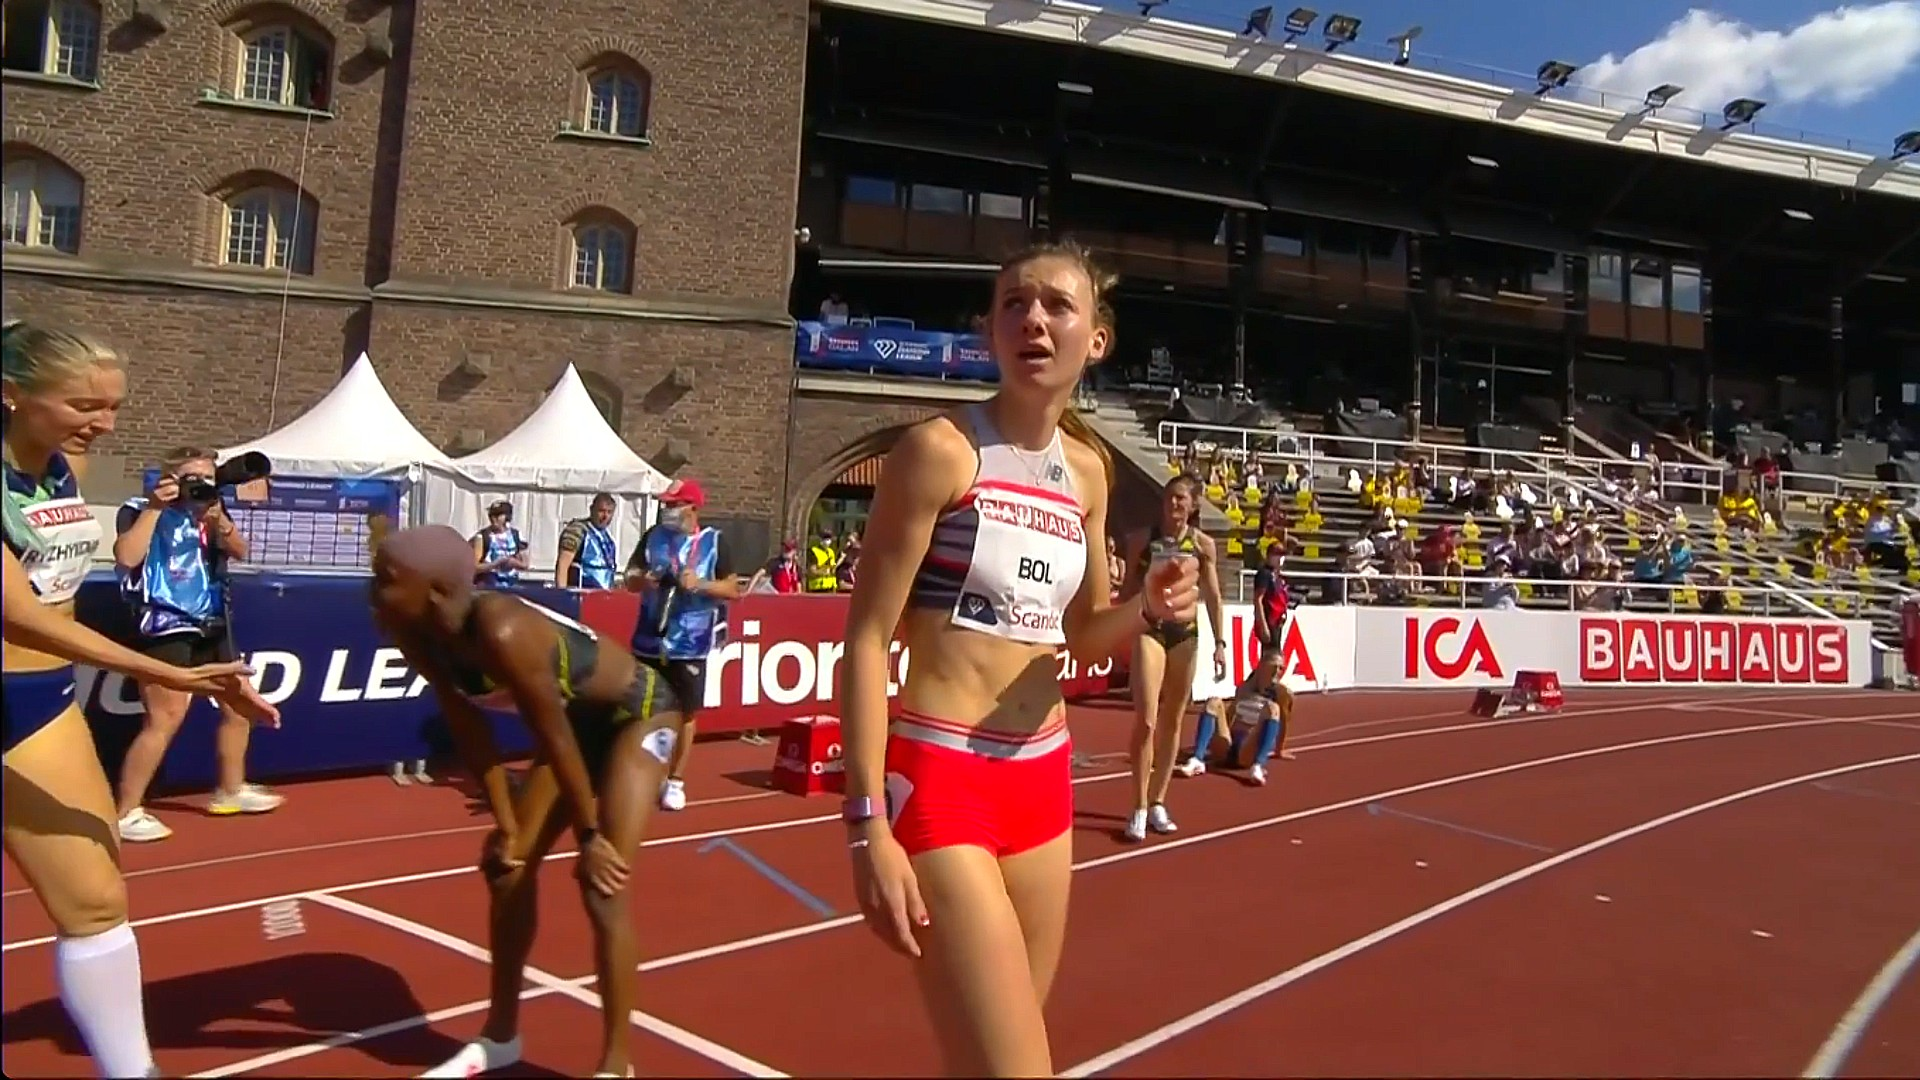 Femke Bol of The Netherlands after the 400m hurdles at the 2021 Stockholm Diamond League